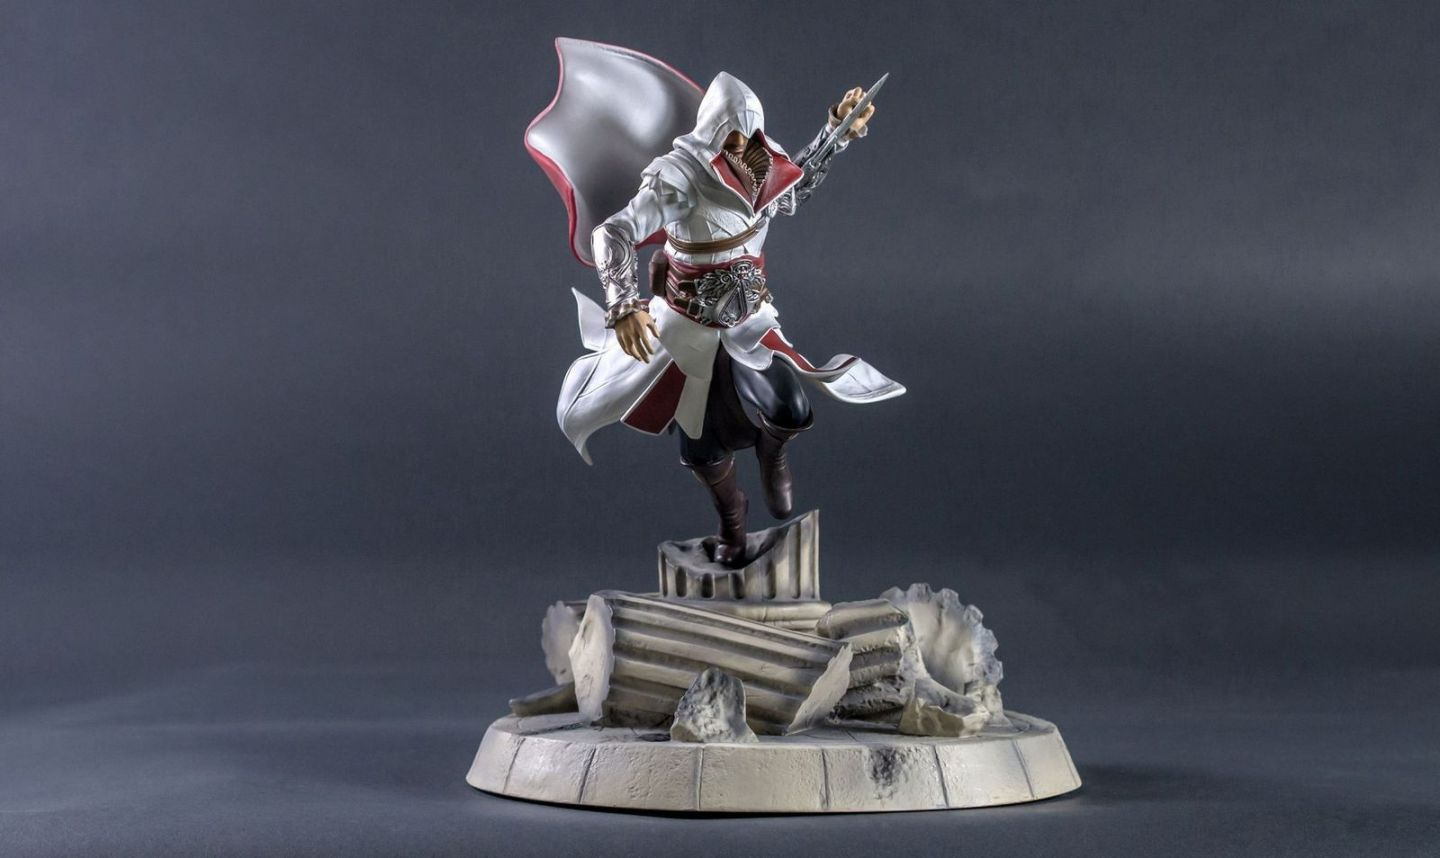 Ezio S Fury Tsume Art Vos Statues De Collection